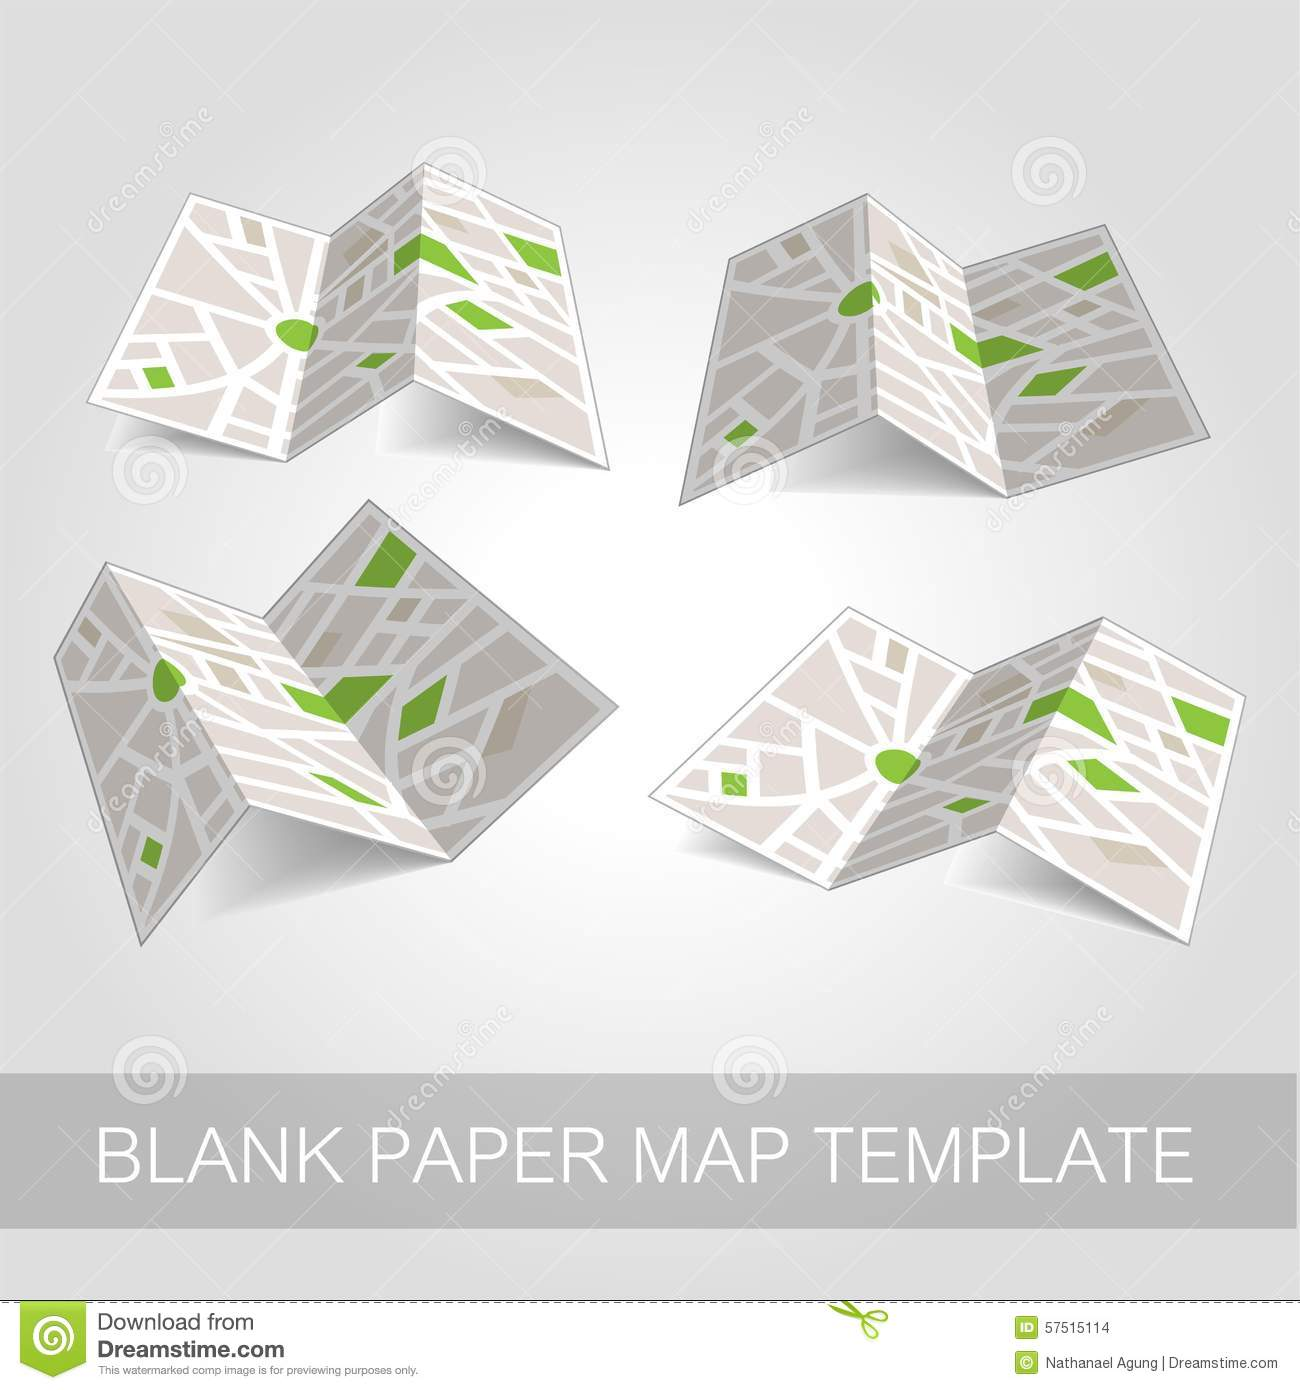 Folded Map Template Illustration Stock Vector - Illustration of ...